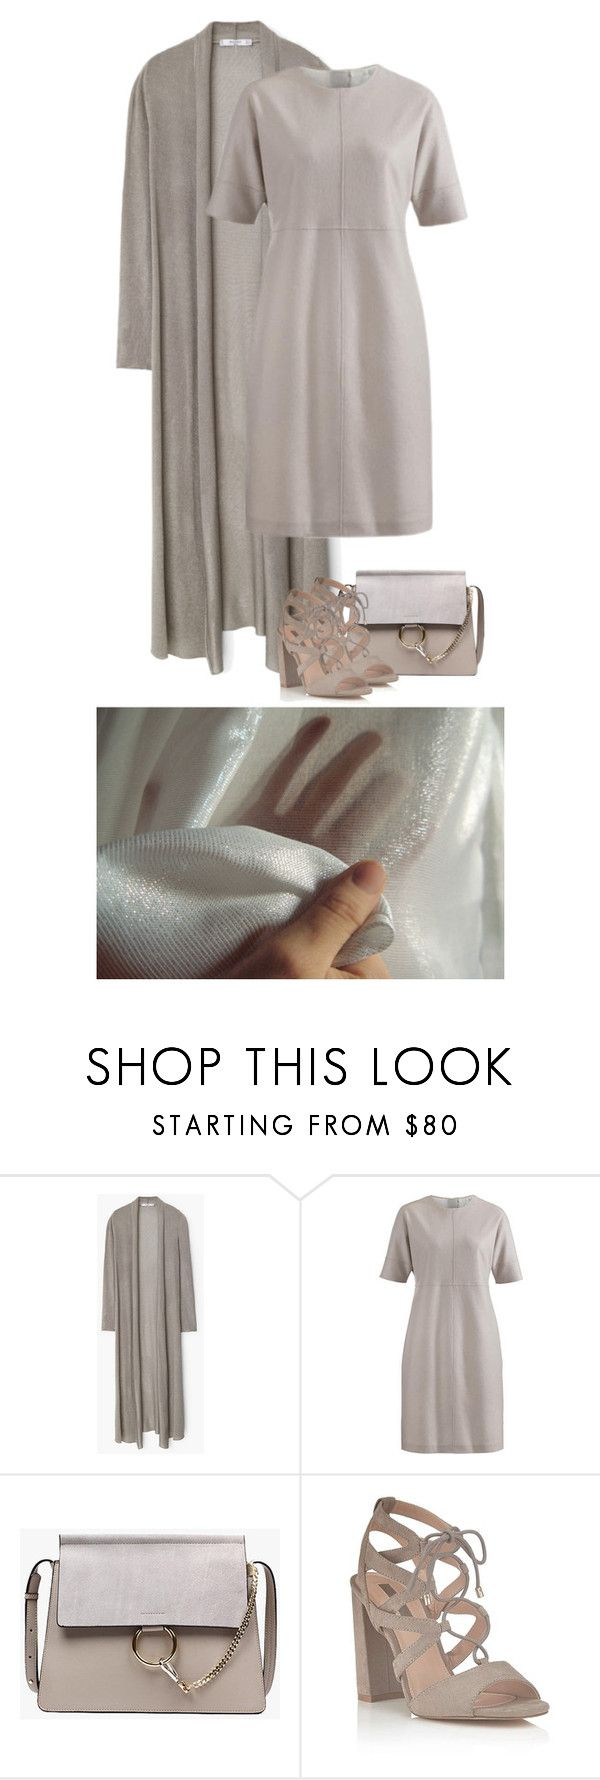 """""""Cool I"""" by pure-emotion-by-violetta ❤ liked on Polyvore featuring MANGO, Miss Selfridge and Peroni"""